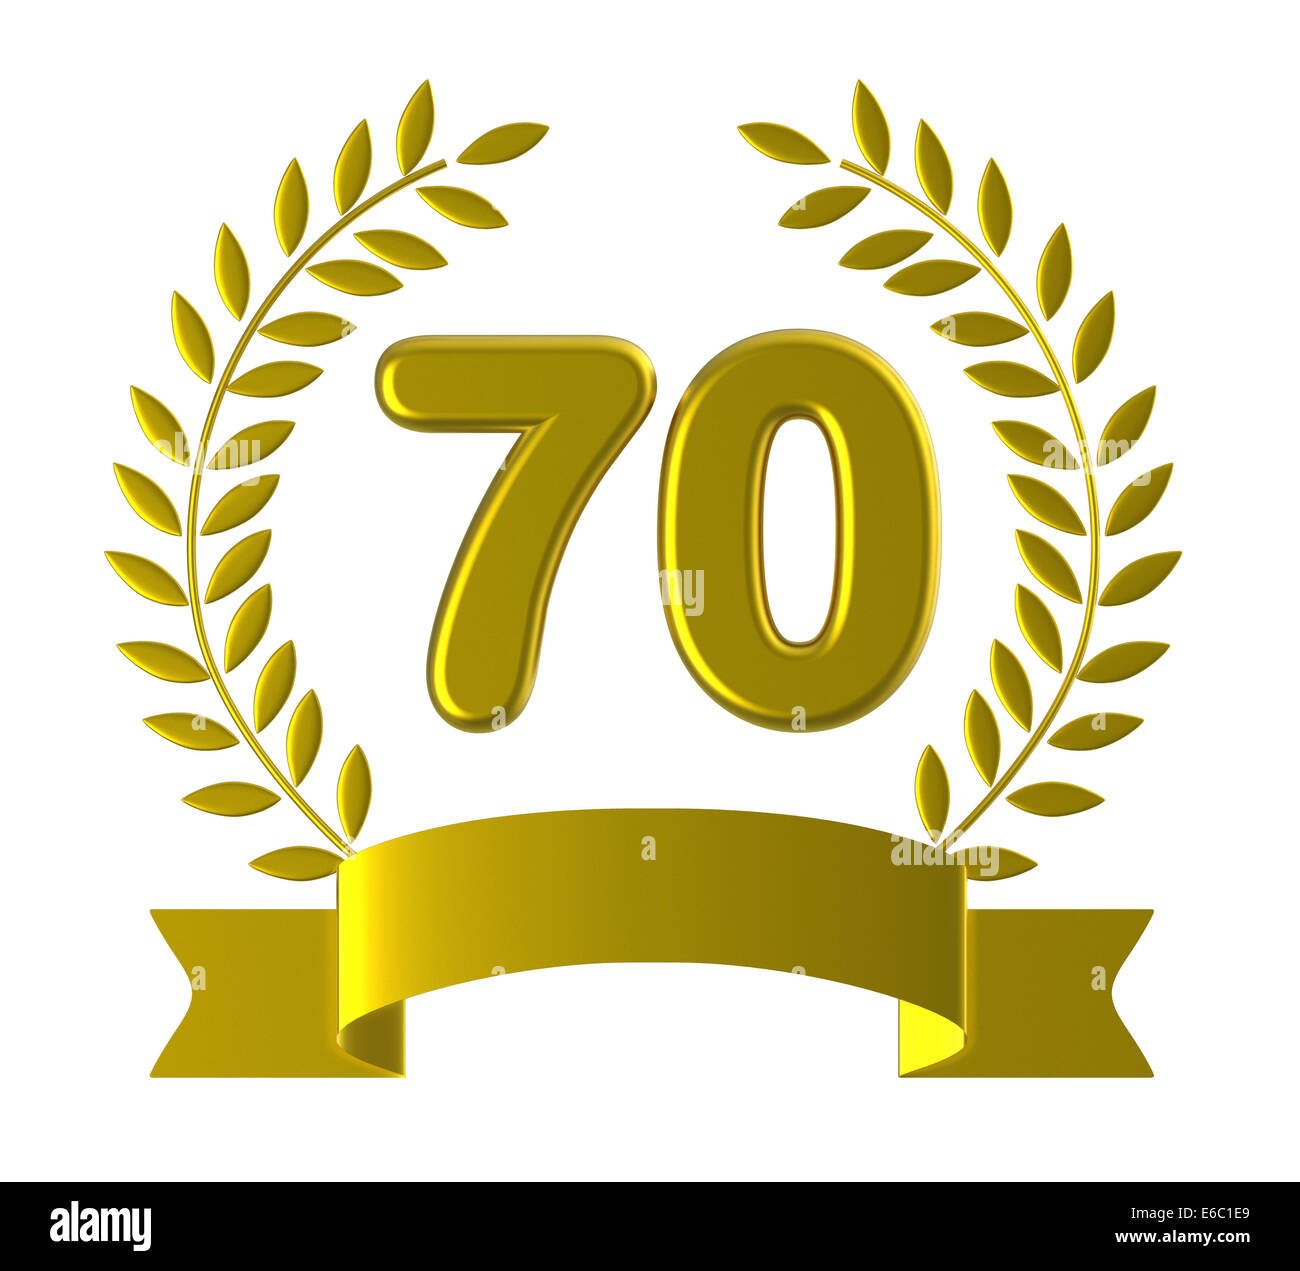 Seventieth birthday meaning happy anniversary and 70th stock photo seventieth birthday meaning happy anniversary and 70th buycottarizona